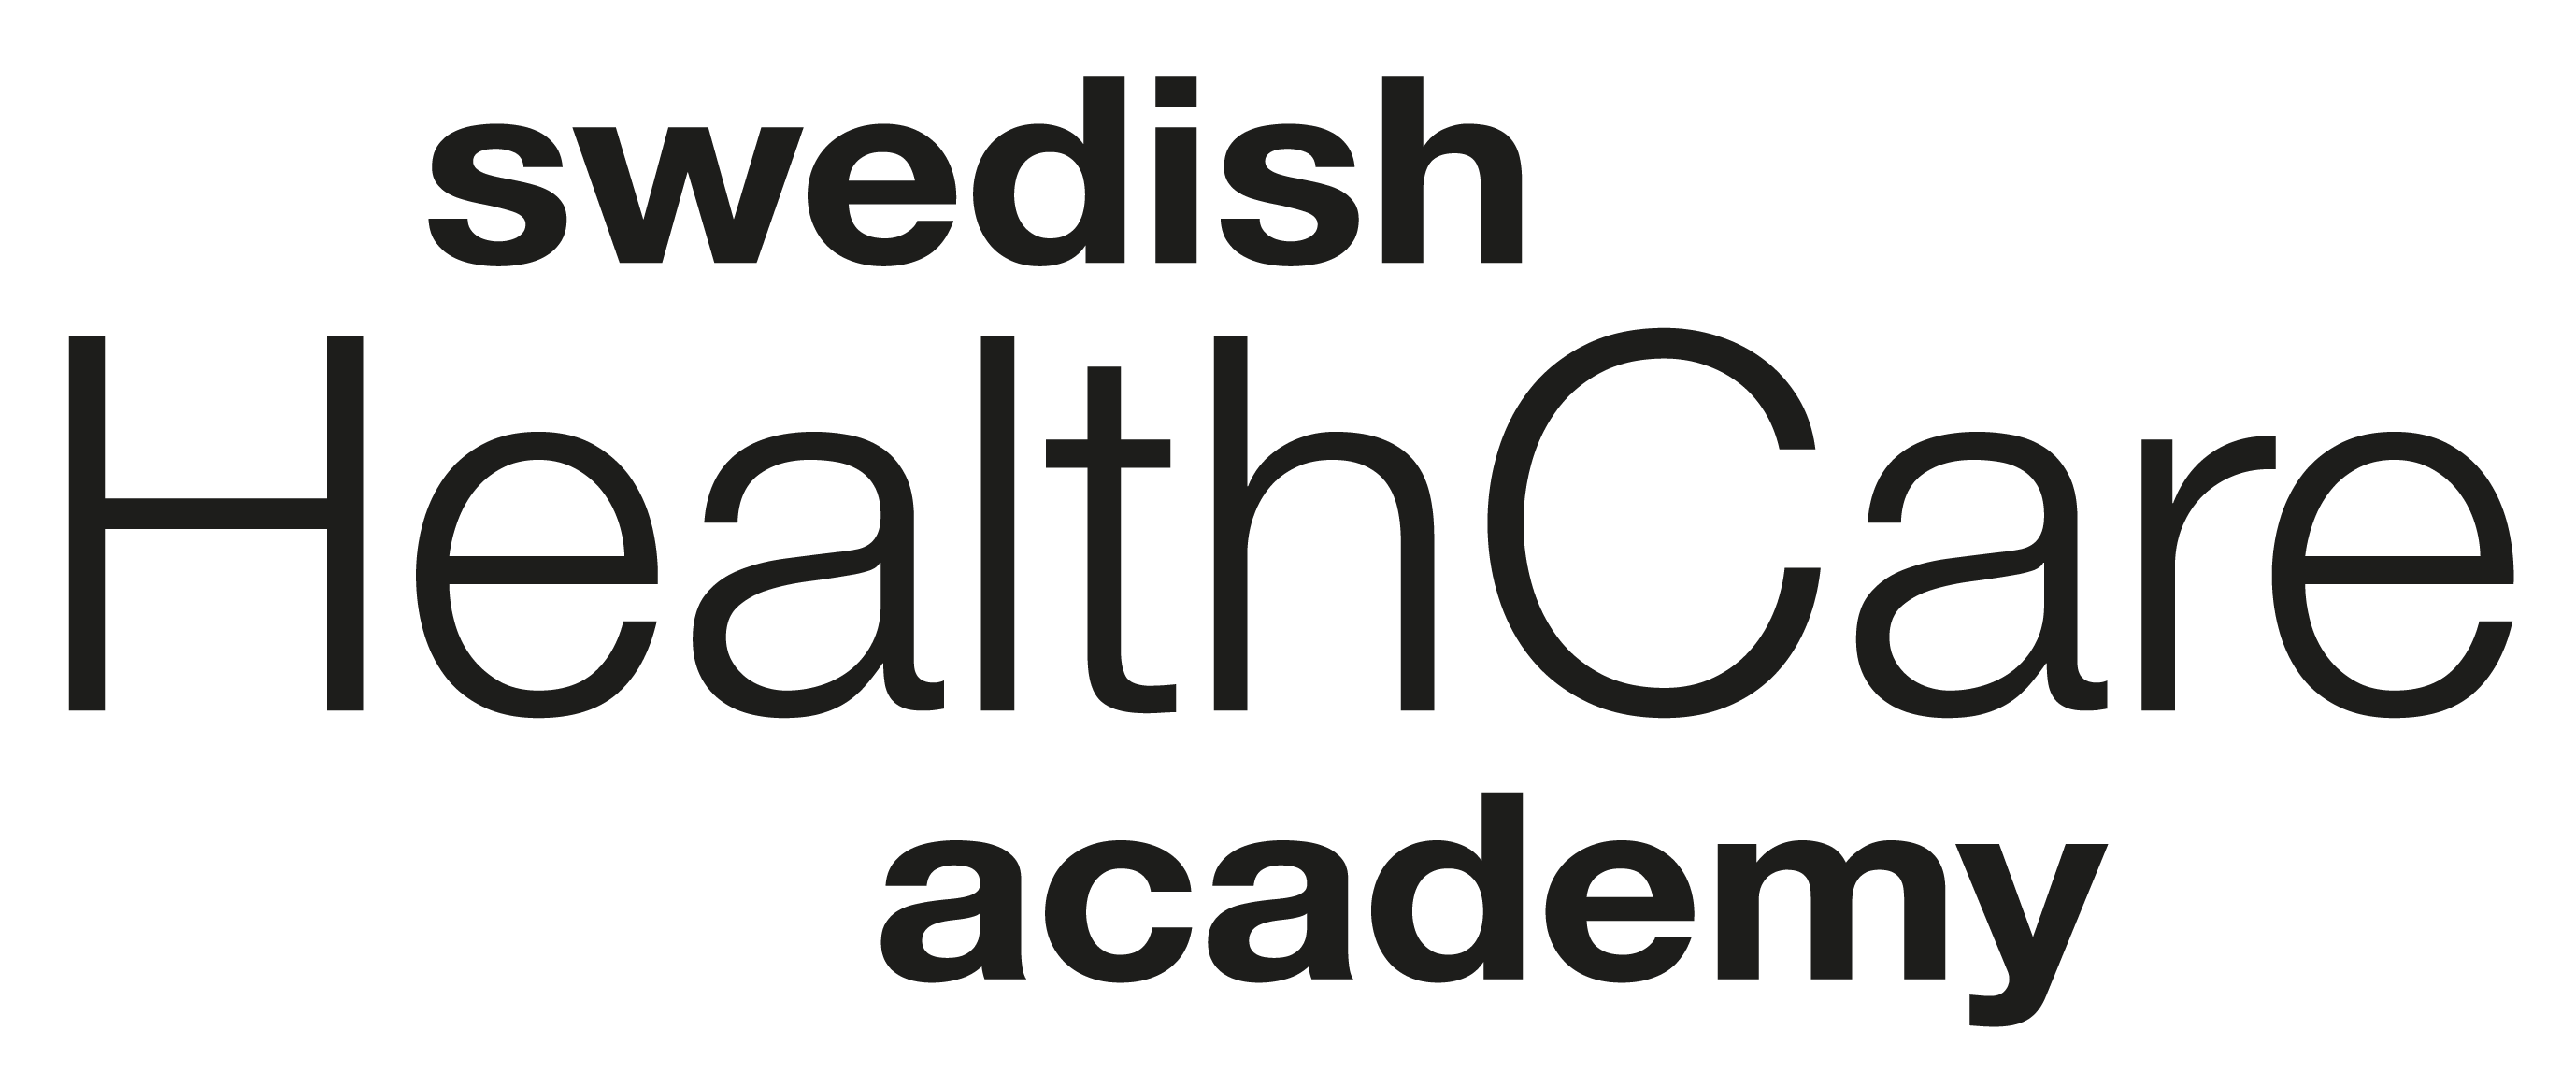 Swedish HealthCare Academy logo